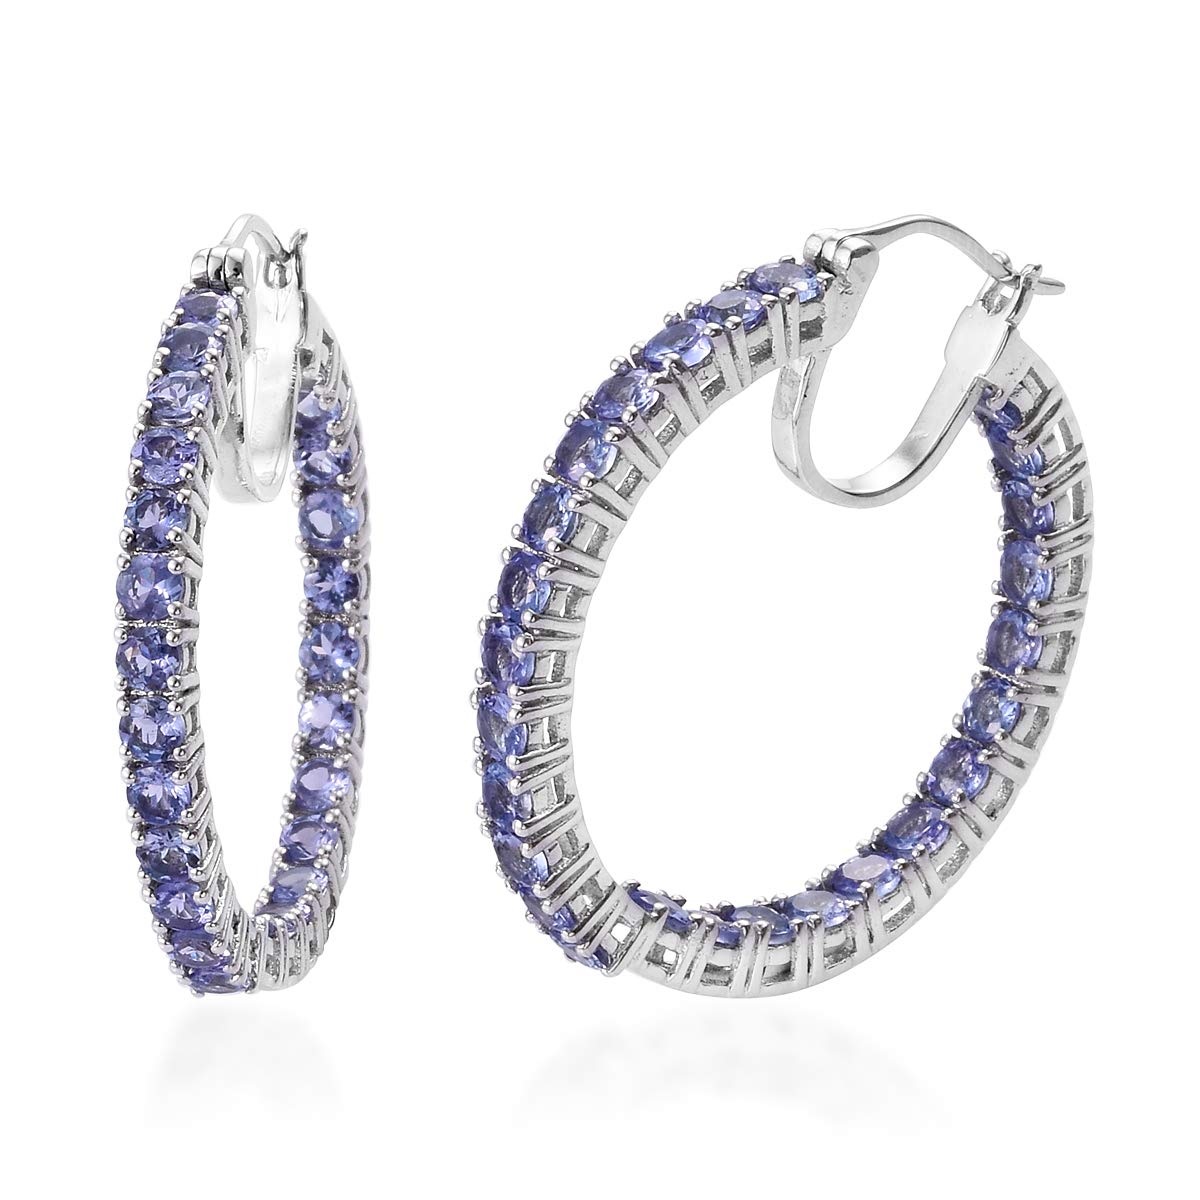 Round Tanzanite Hoops Hoop Earrings 925 Sterling Silver Platinum Plated Jewelry for Women Ct 5.8 by Shop LC Delivering Joy